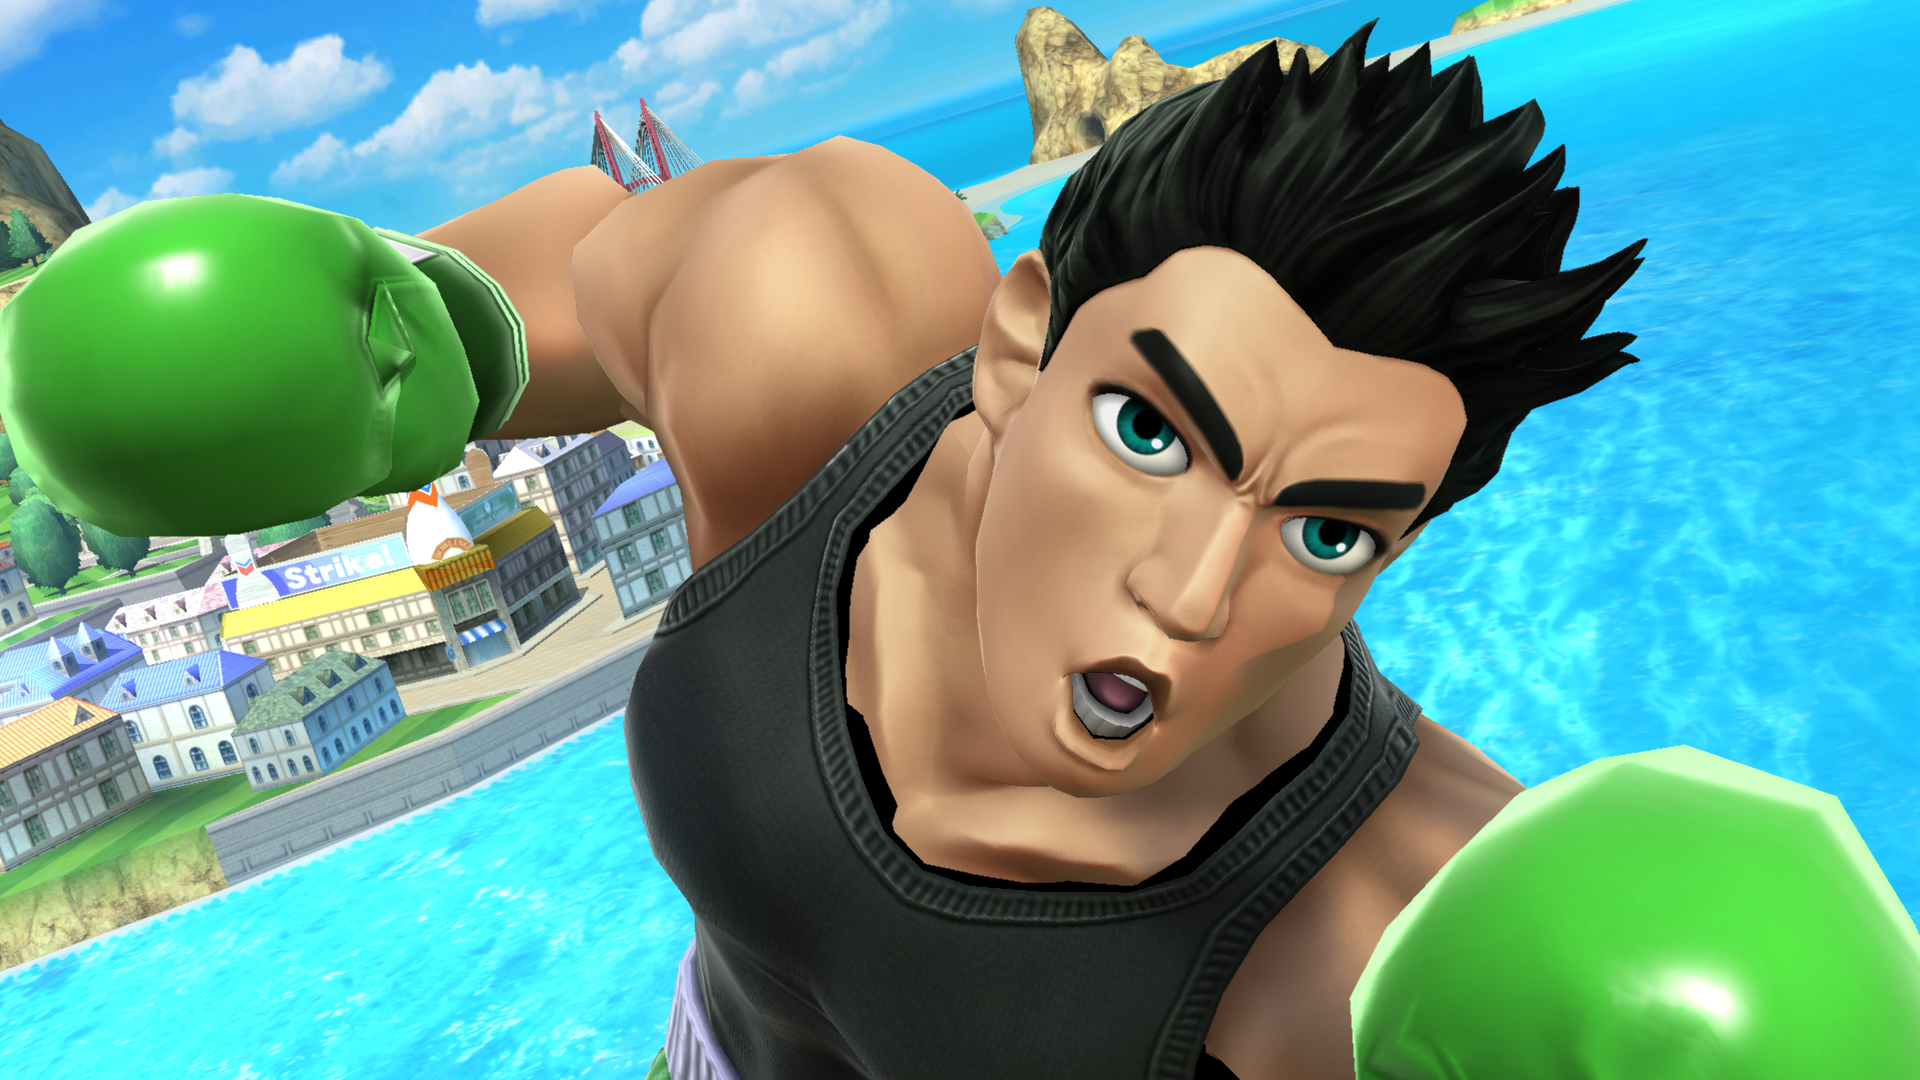 Is Little Mac the worst Super Smash Bros. Wii U character?